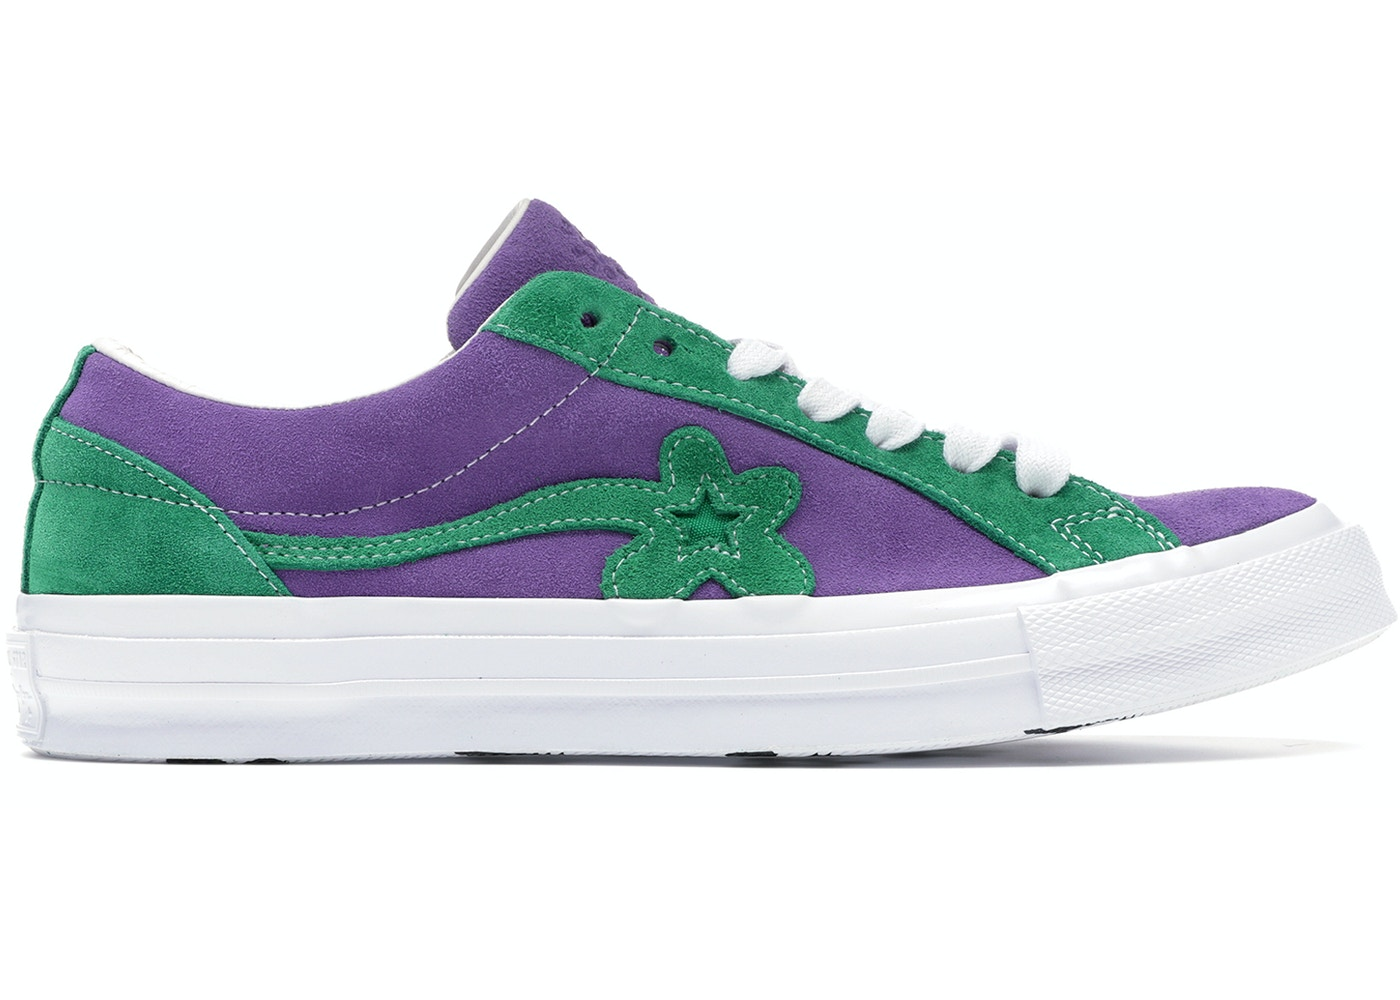 Converse One Star Ox Tyler the Creator Golf Le Fleur Purple Green - 162128C 93e2dcf26